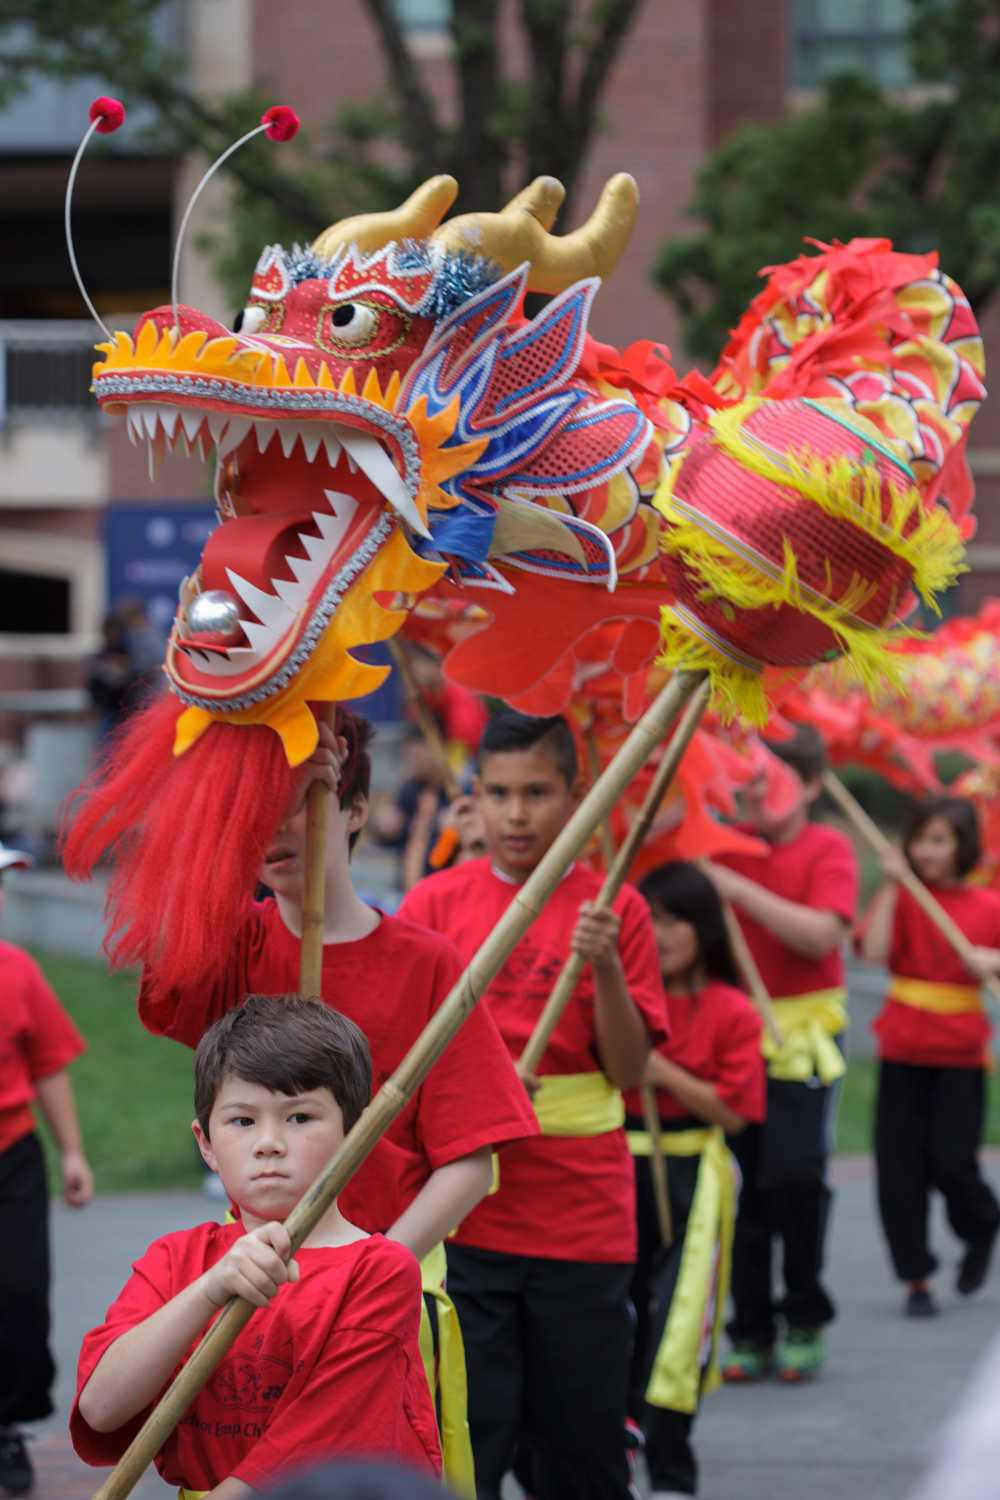 The Redwood Empire Chinese Association Traditional Lion Parade marches.